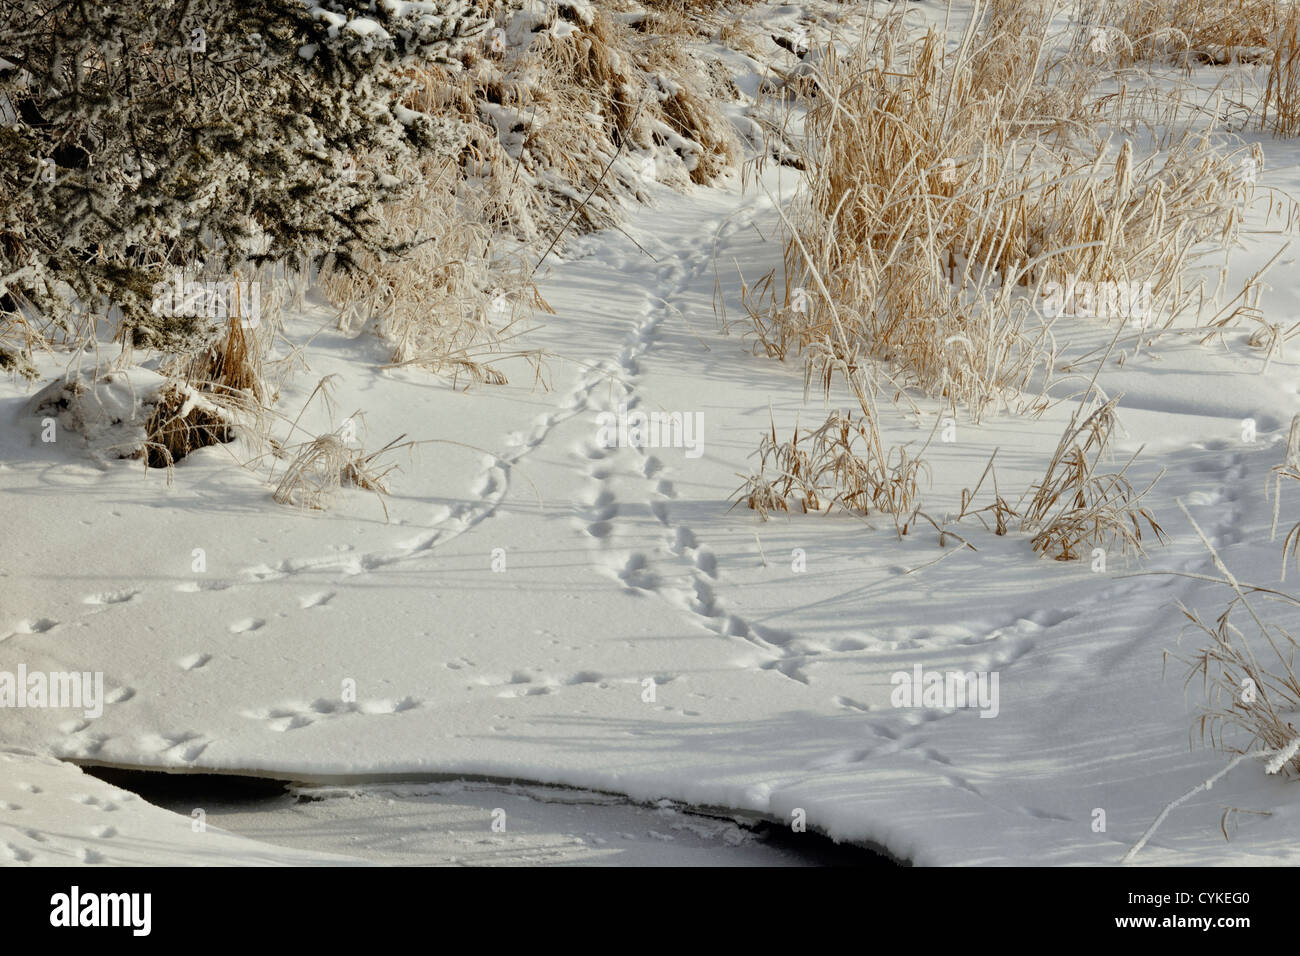 Animal tracks in snow along the shore of Junction Creek, Greater Sudbury, Ontario, Canada - Stock Image